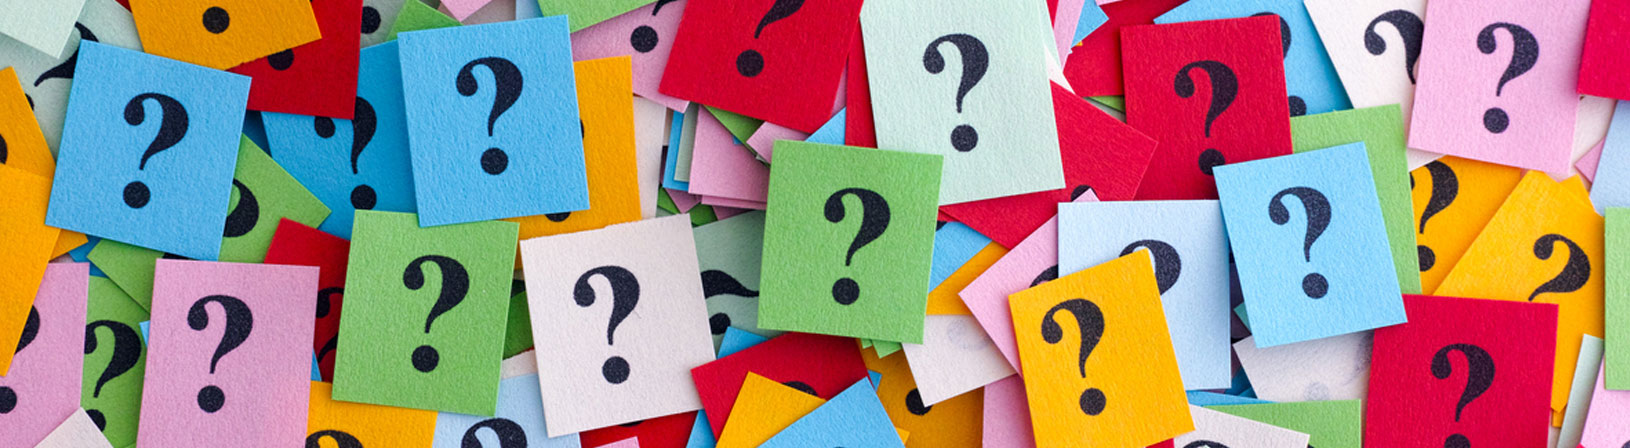 Common Questions Buyers ask Real Estate Agents